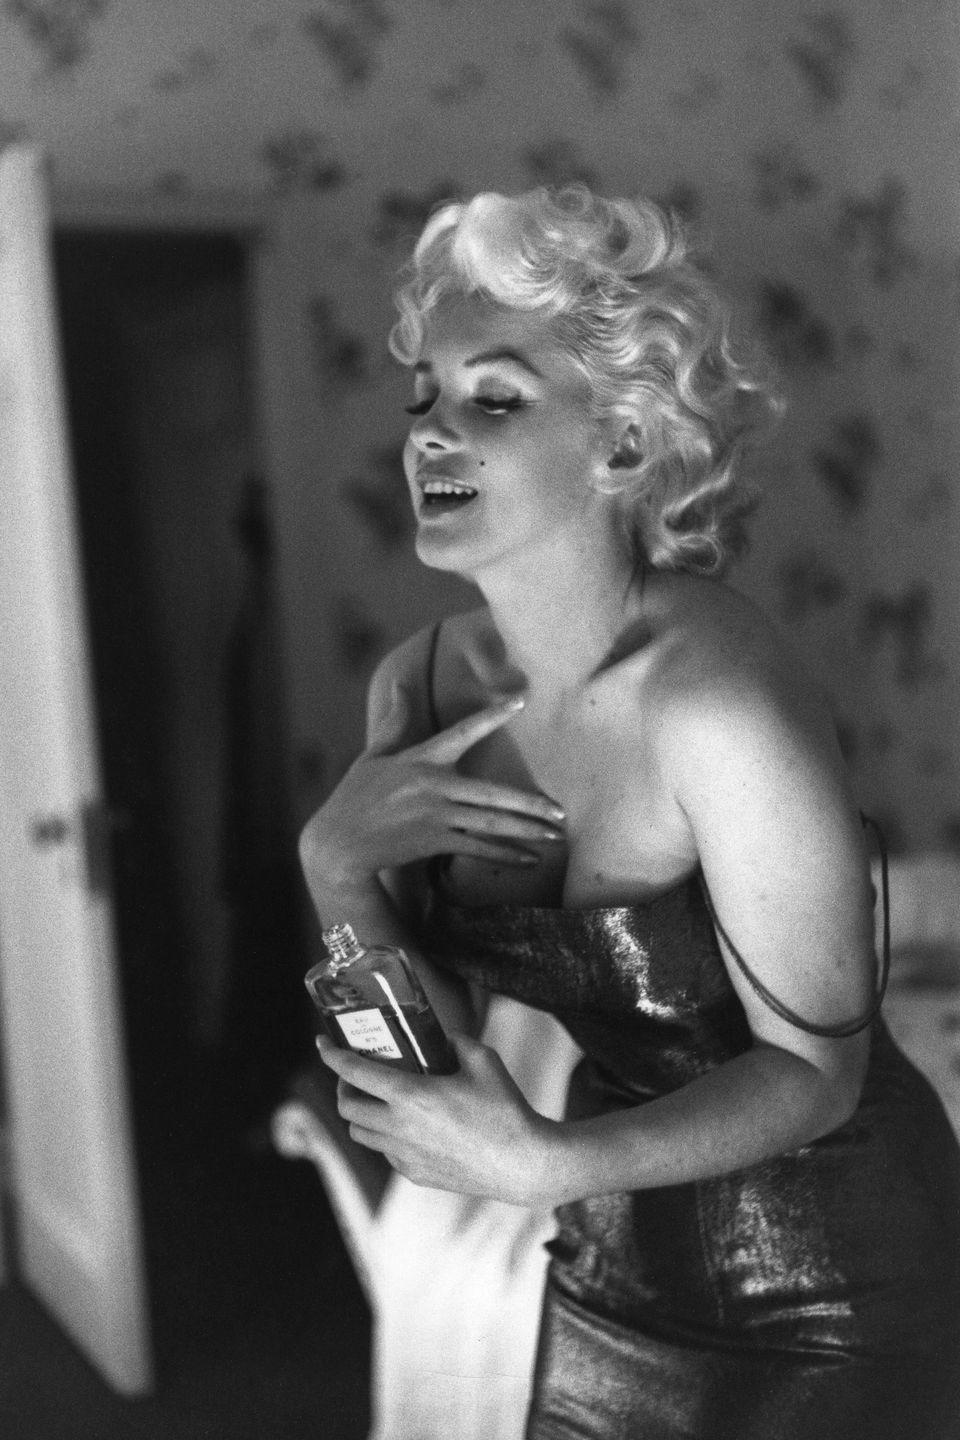 <p>Monroe applies Chanel No. 5 perfume while getting ready in her room at the Ambassador Hotel to see the play <em>Cat On A Hot Tin Roof</em> in New York City. </p>